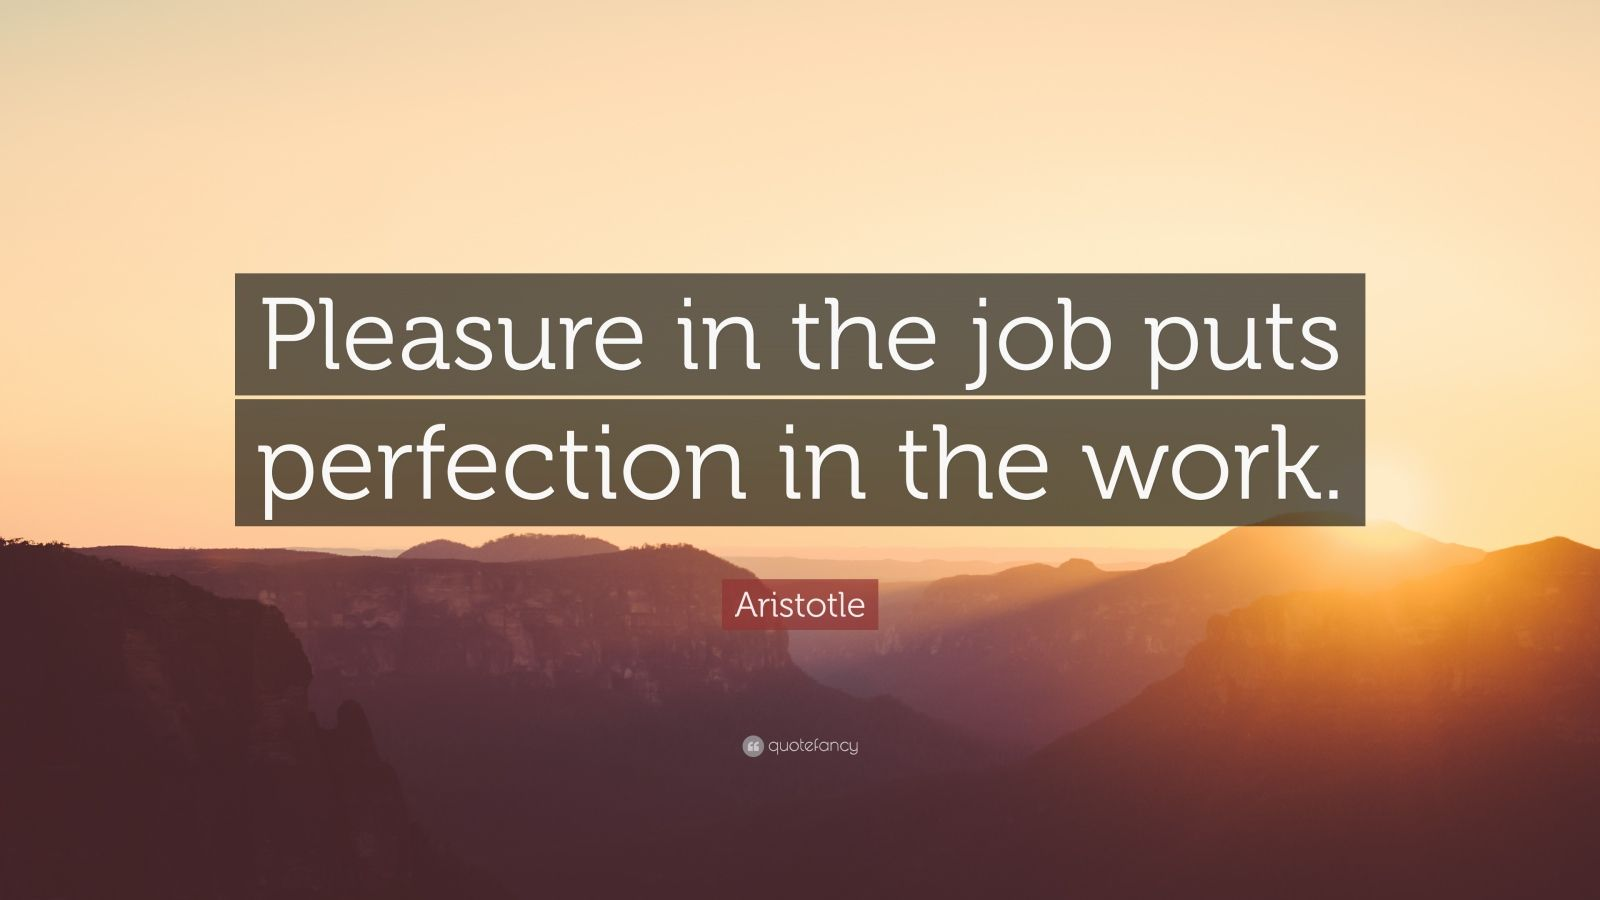 Quotes About Success Wallpaper Aristotle Quote Pleasure In The Job Puts Perfection In